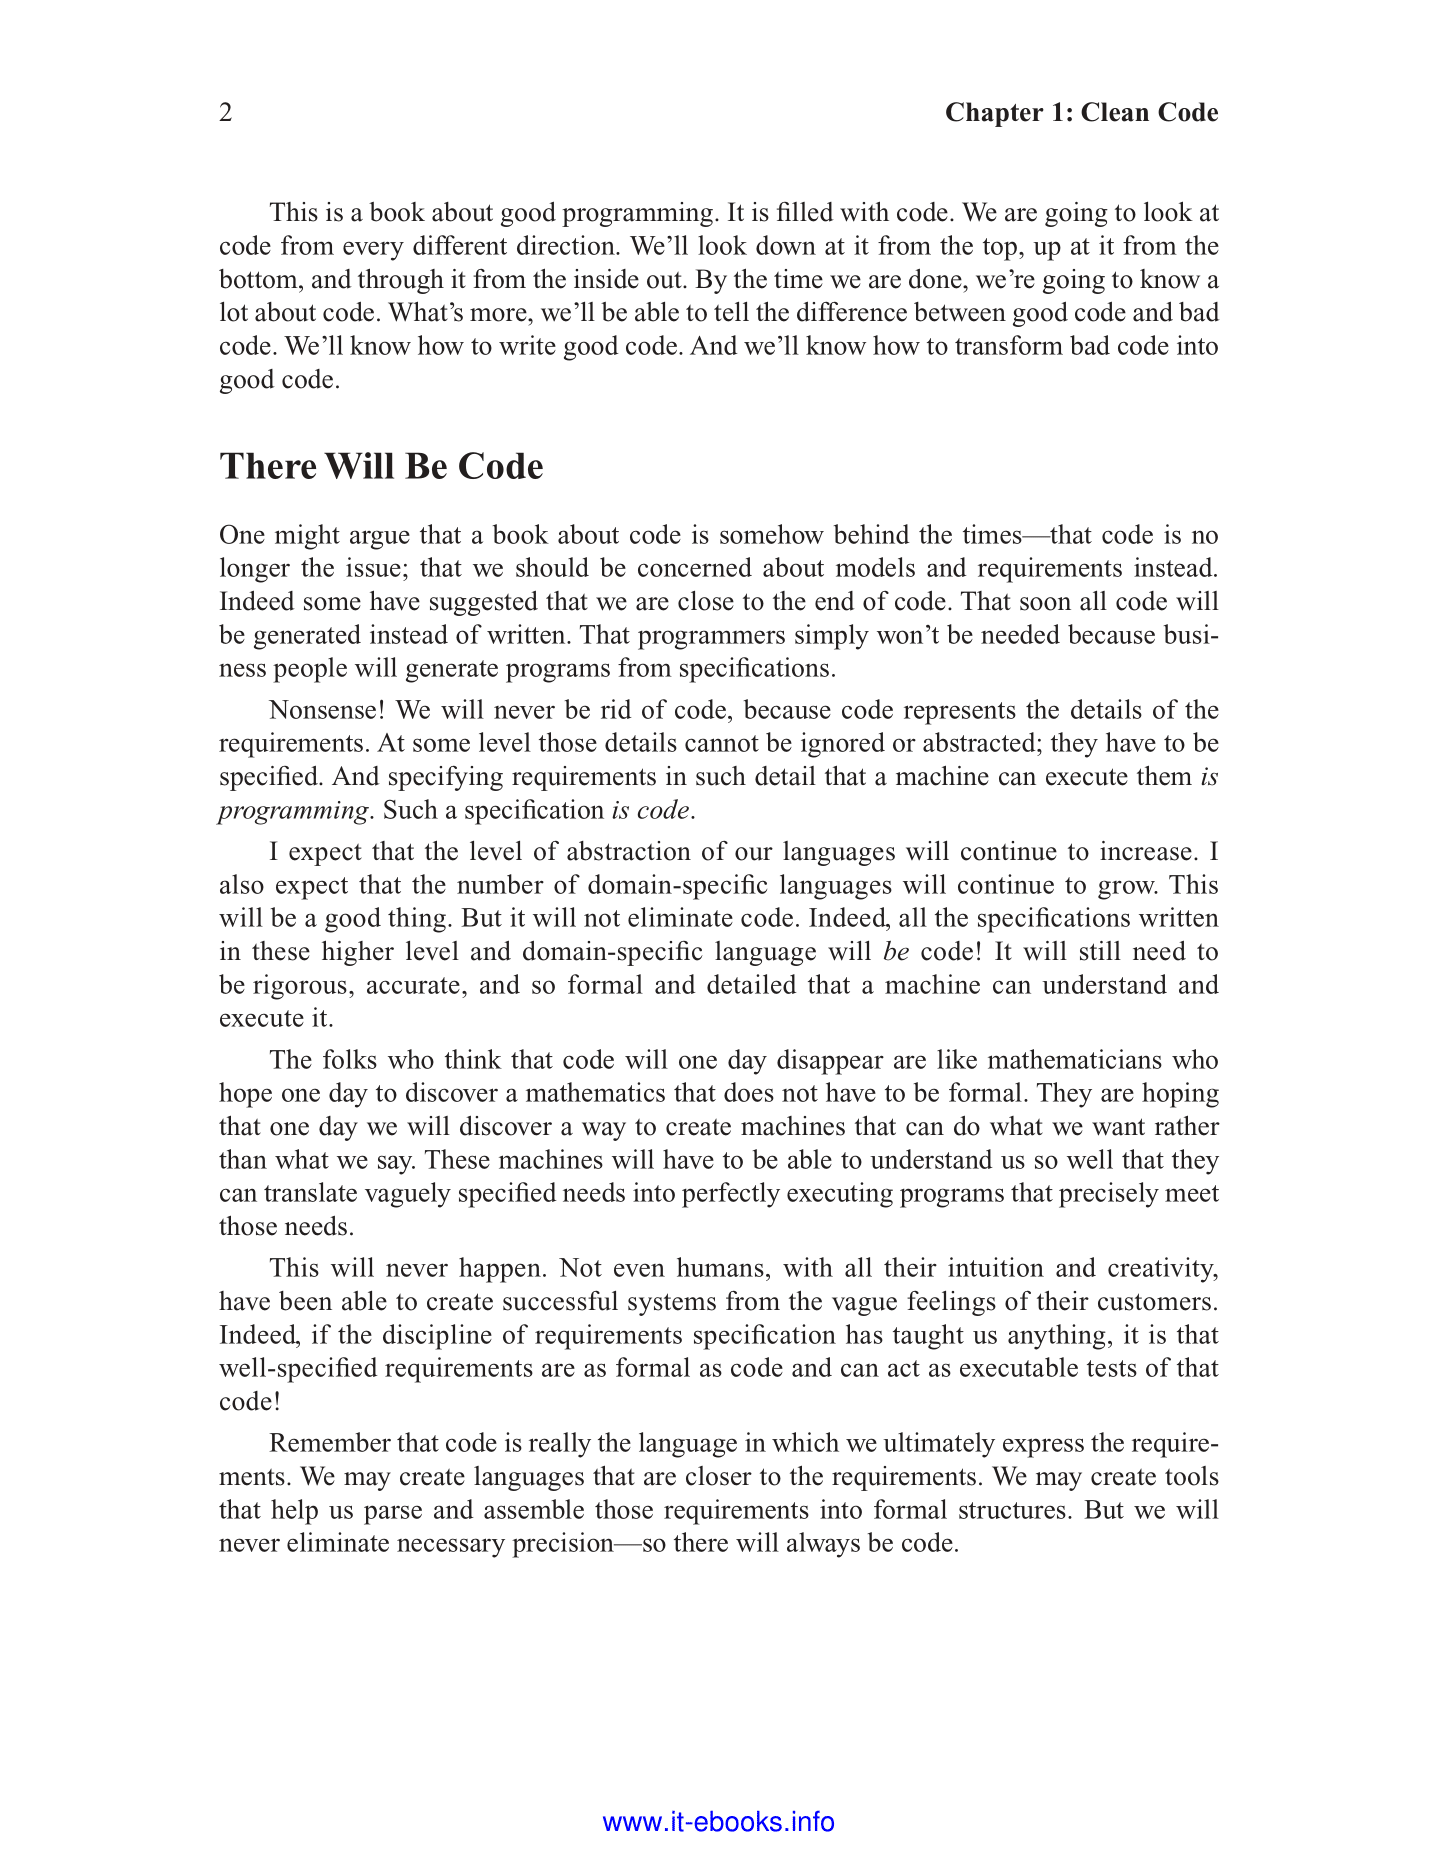 PROGRAMMINGClean Code by Robert C Martin pages 32 46 pages 1 2 2 create an audiobook using python,pyttsx3,gtts,pyttsx3 vs gtts